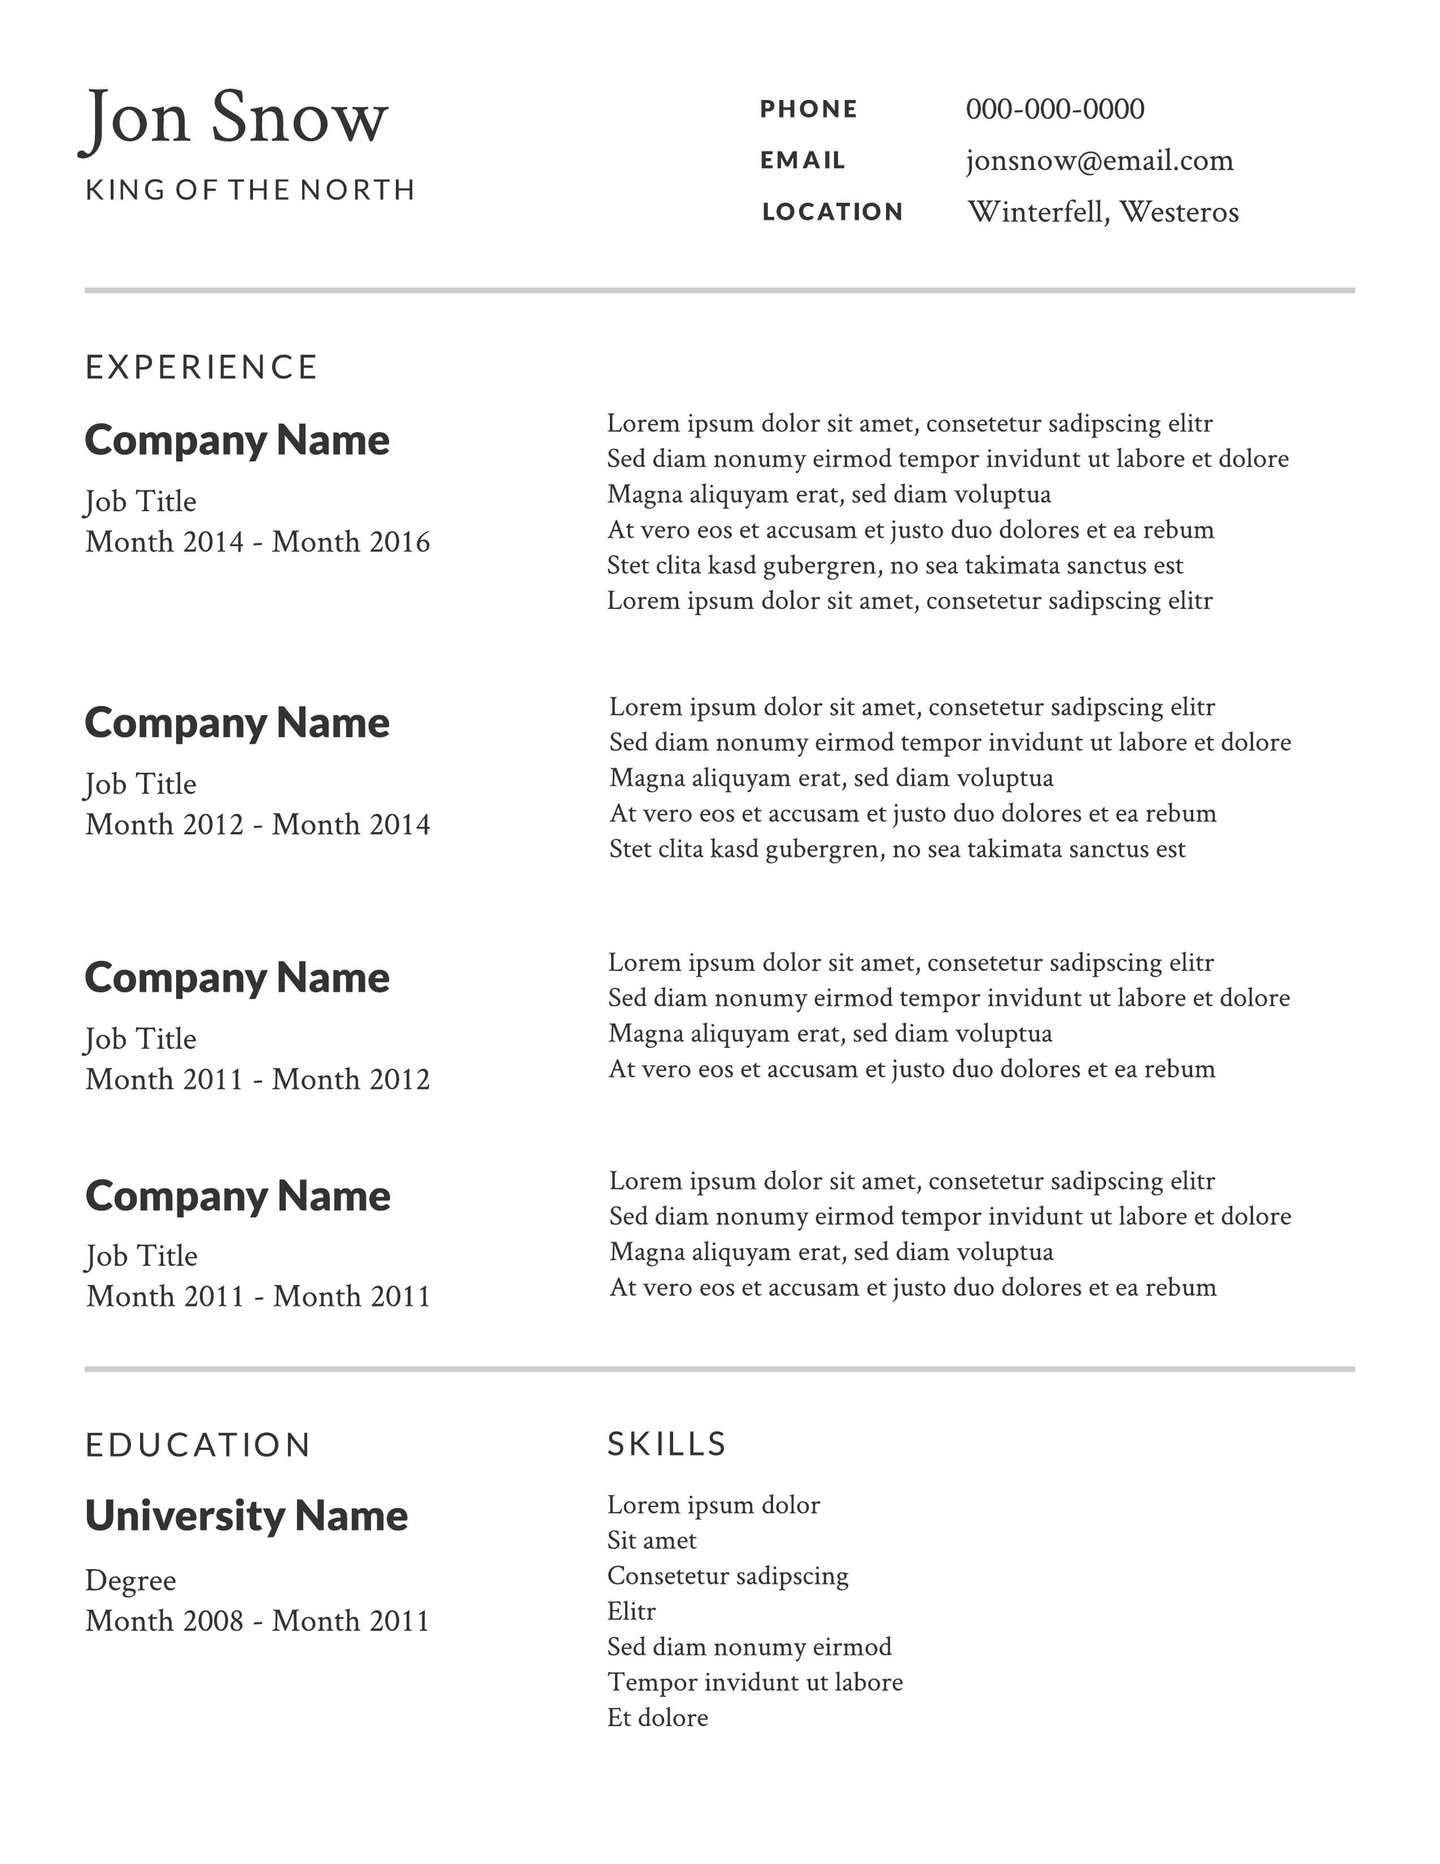 free professional resume template - How Should A Professional Resume Look